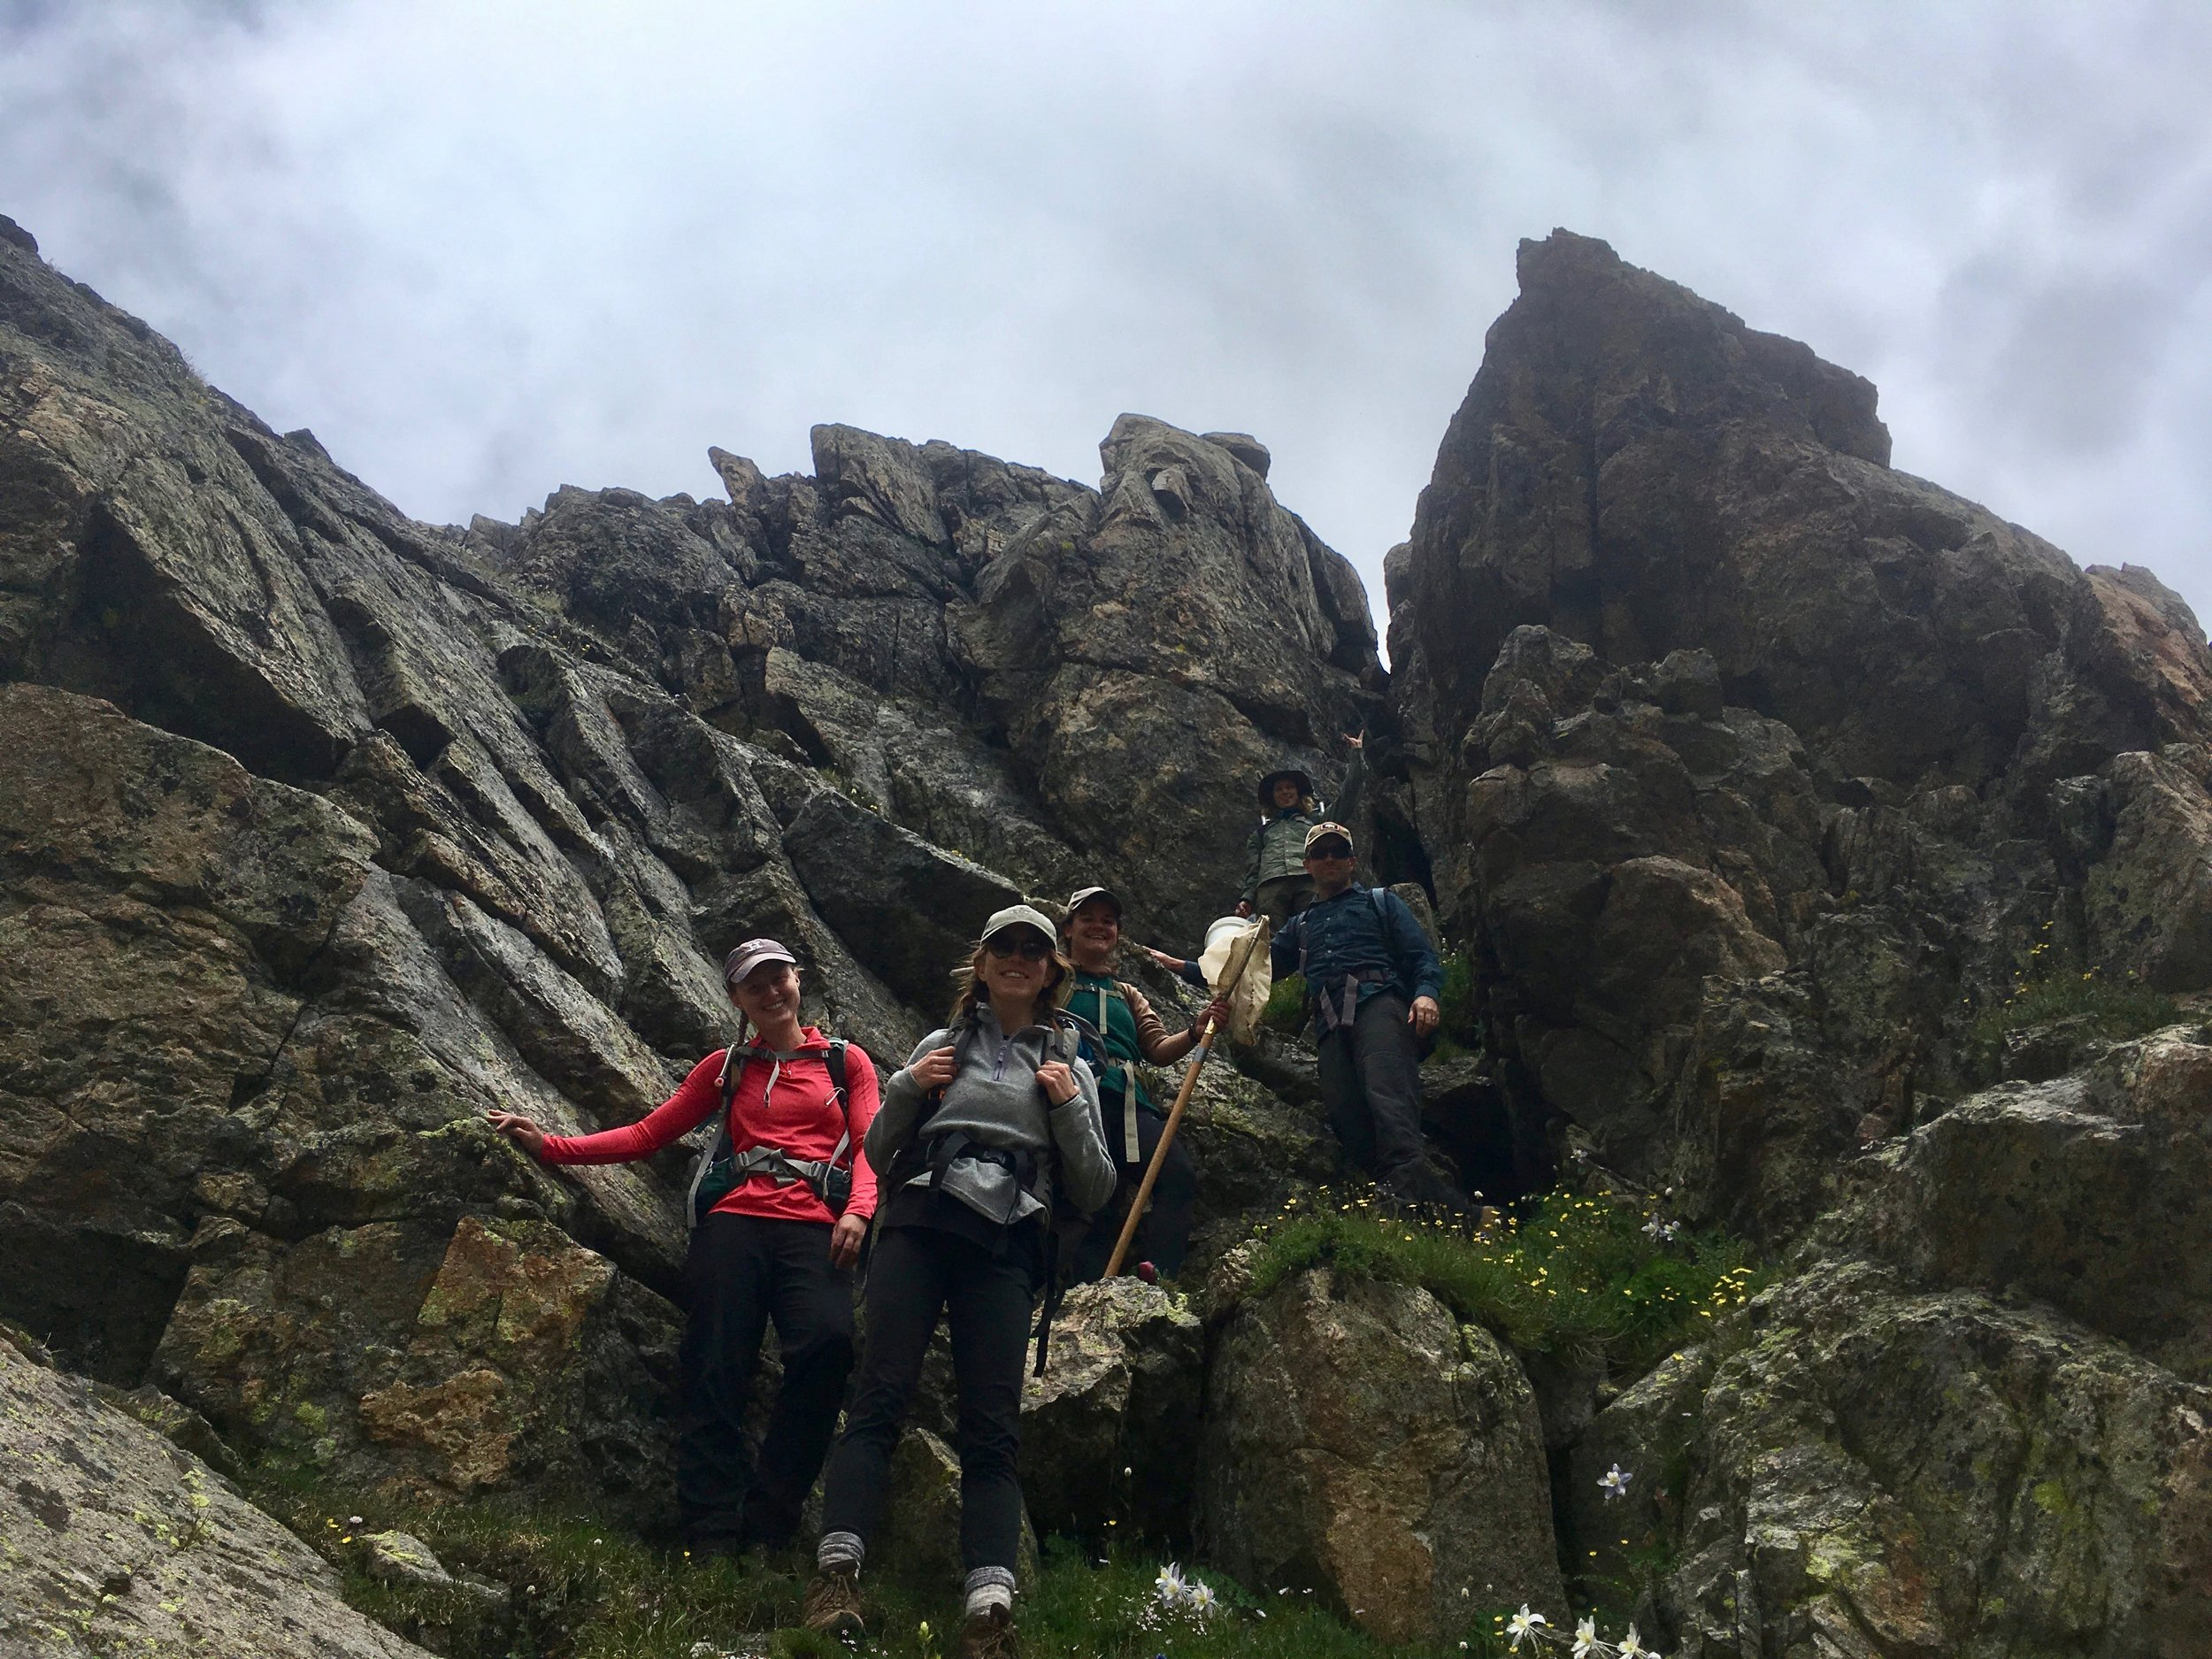 Photo by Kelly Loria of Dr. Johnson with AJ Lodge, UROP students Anika Cobb and Emma Ordemann and REU student Sammy Yevak hiking down from Green Lake 4 (GL4).